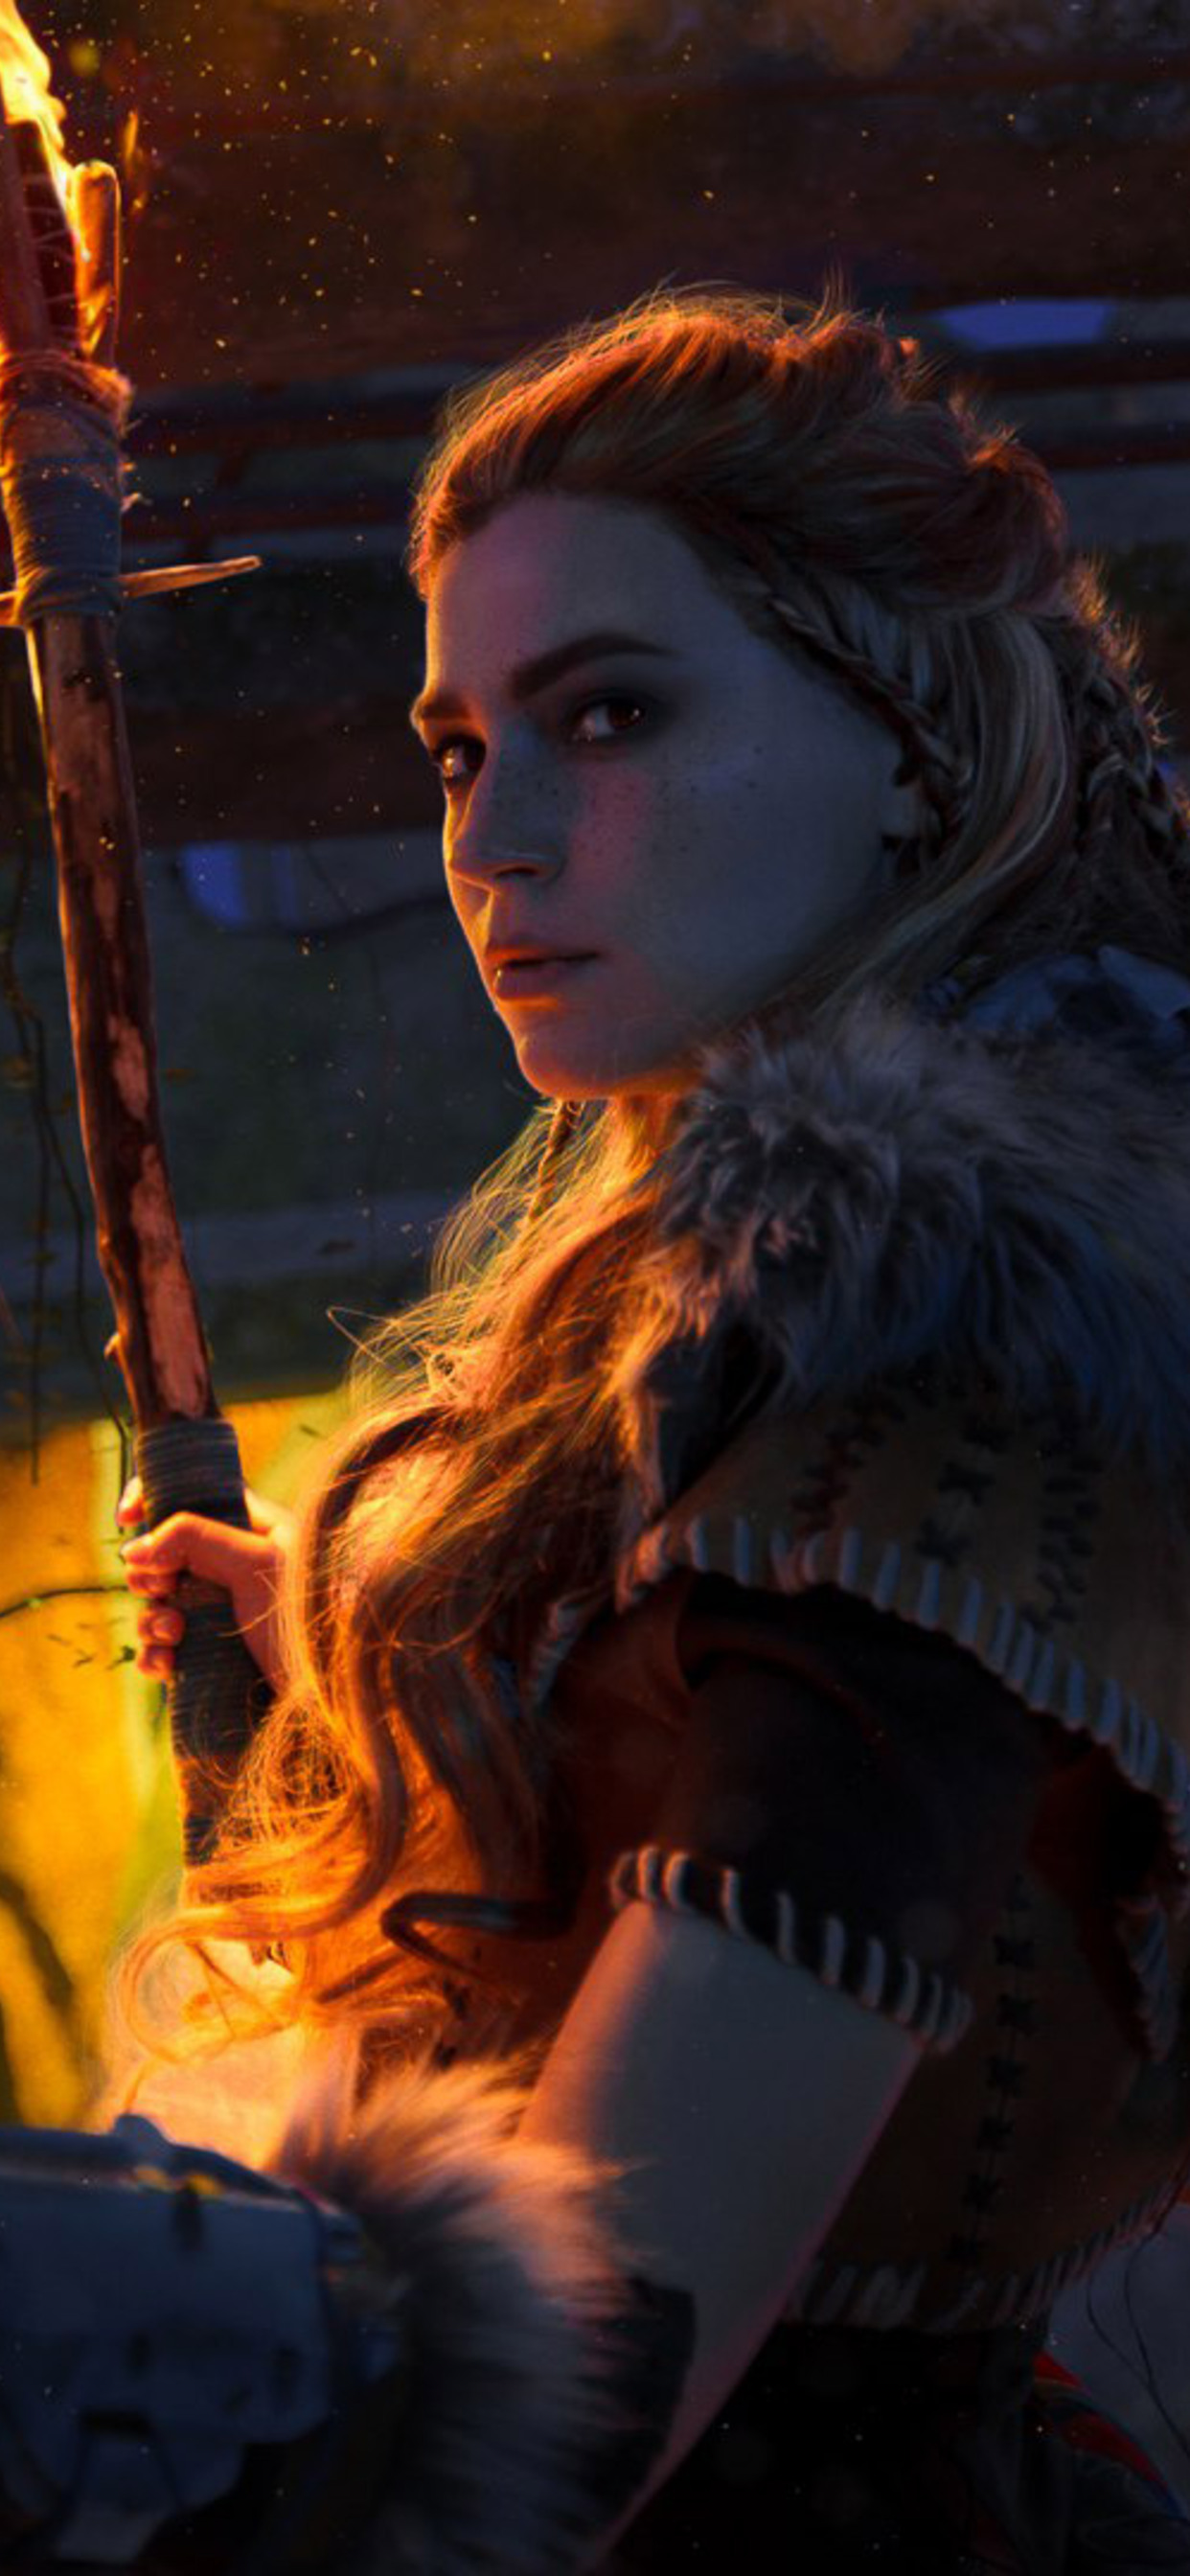 aloy-horizon-zero-dawn-game-cosplay-qhd.jpg